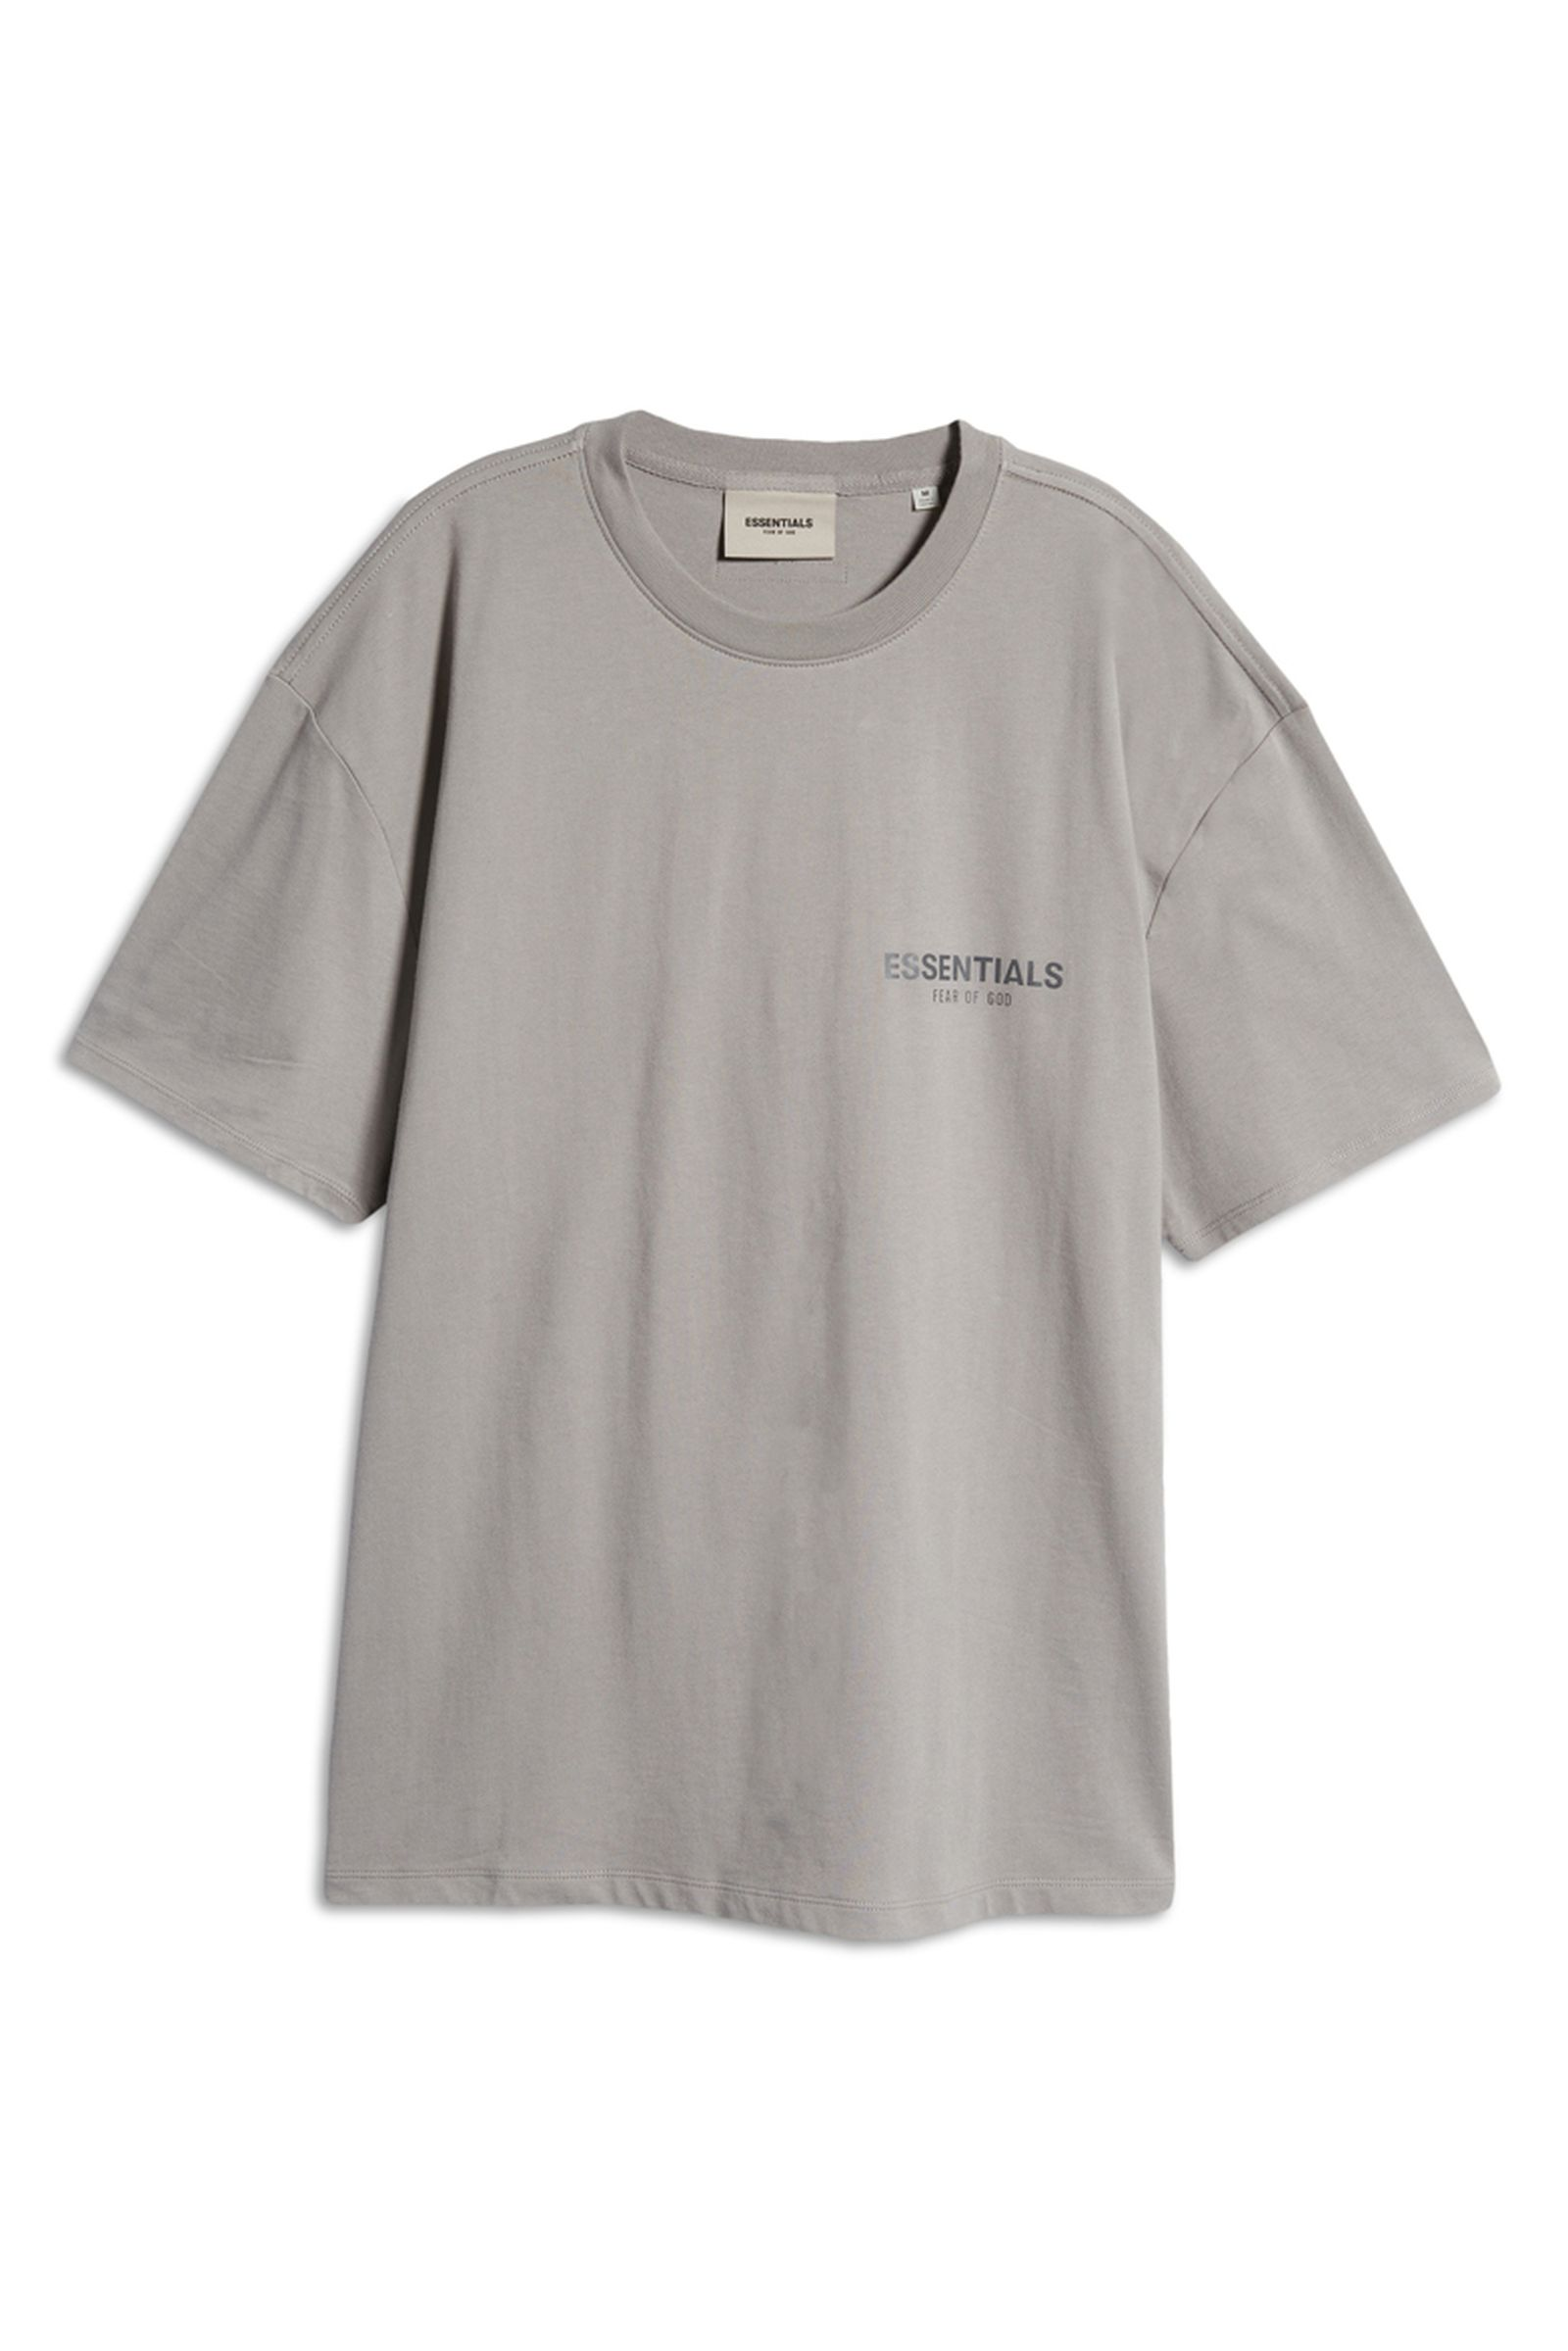 fear of god essentials nordstrom exclusive (14)